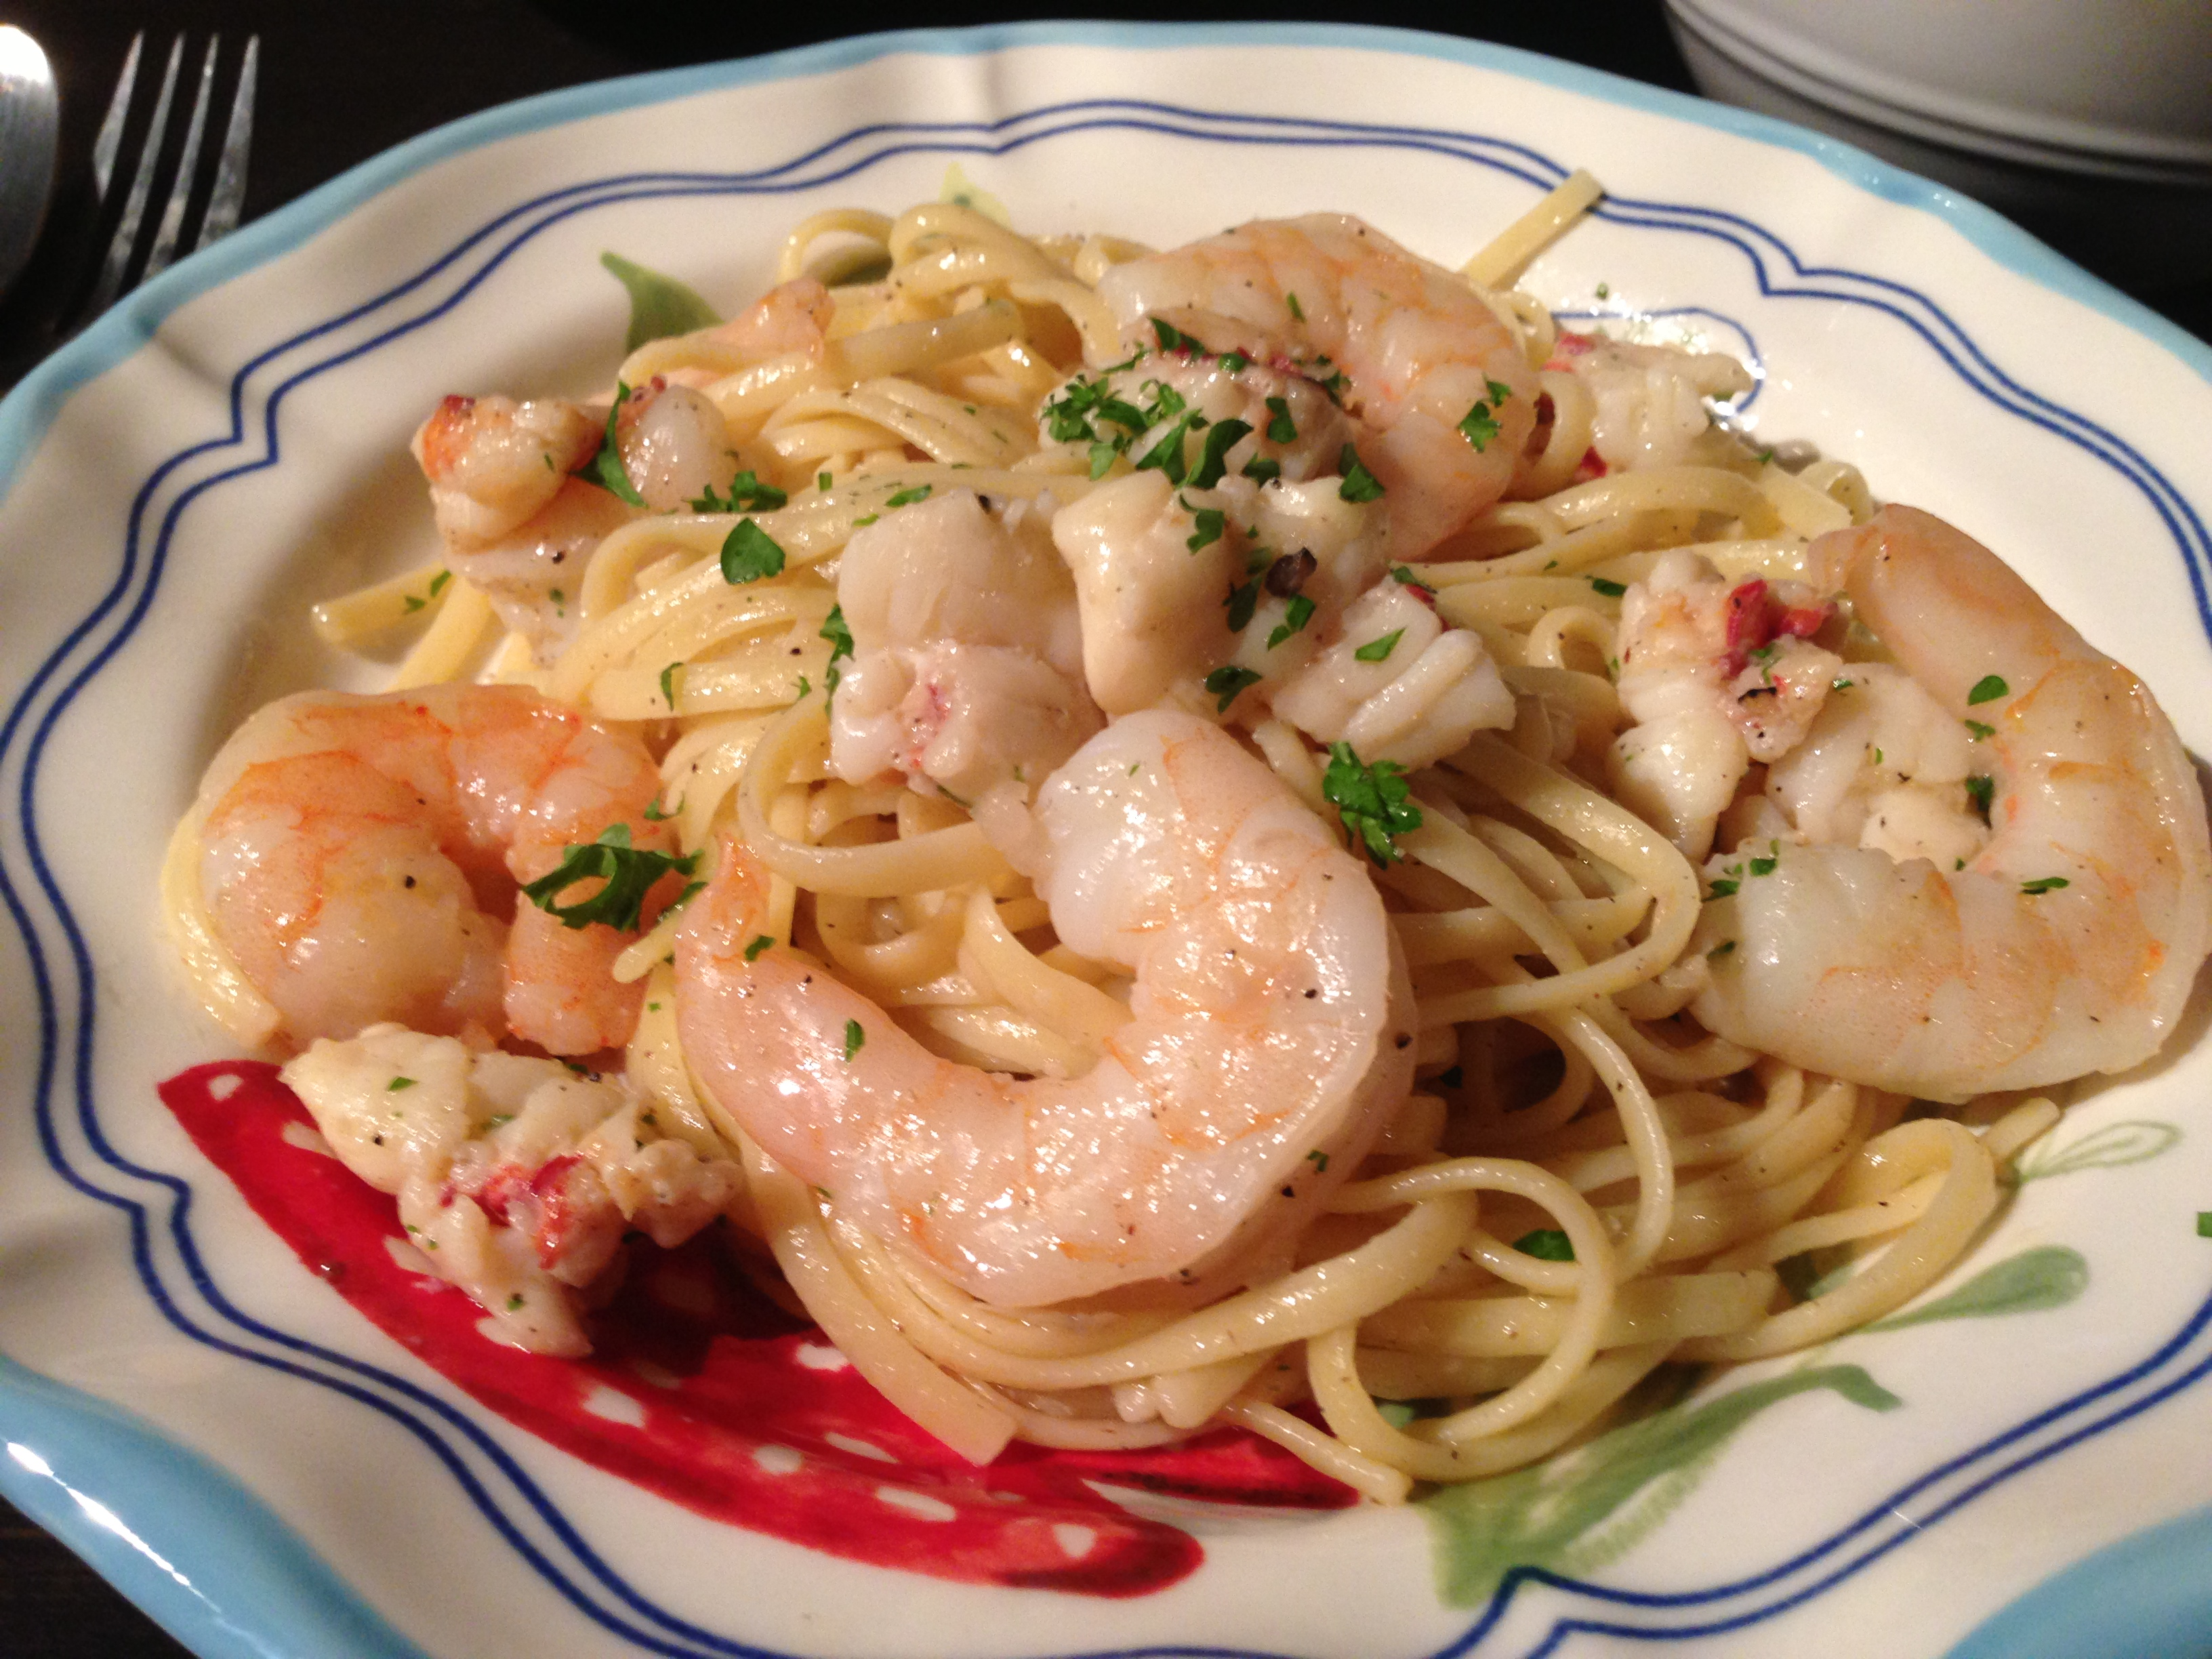 Lobster tail and pasta recipe